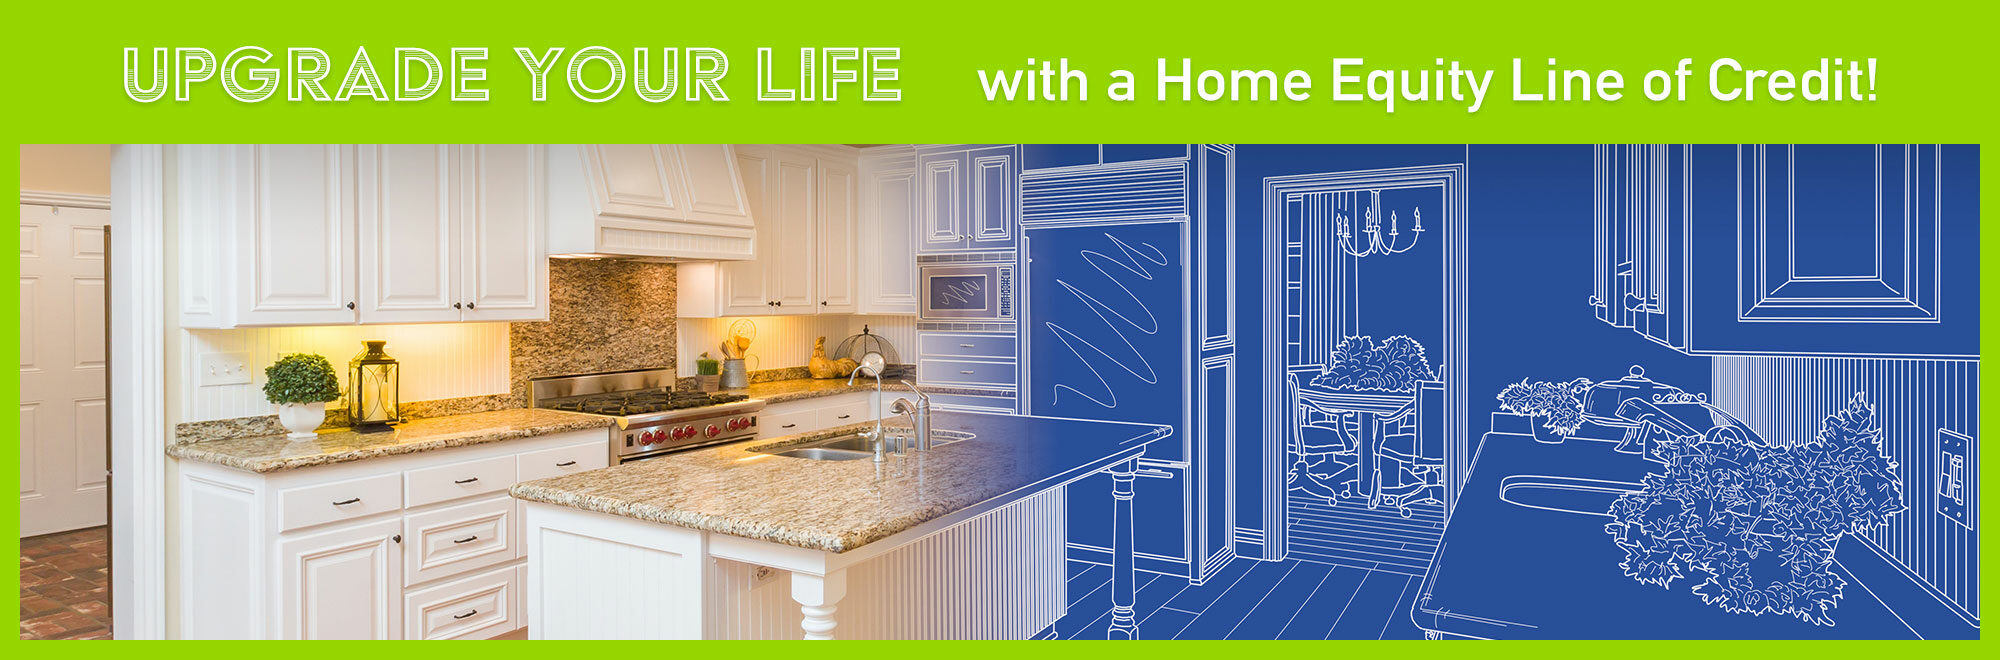 Upgrade your life with a home equity line of credit